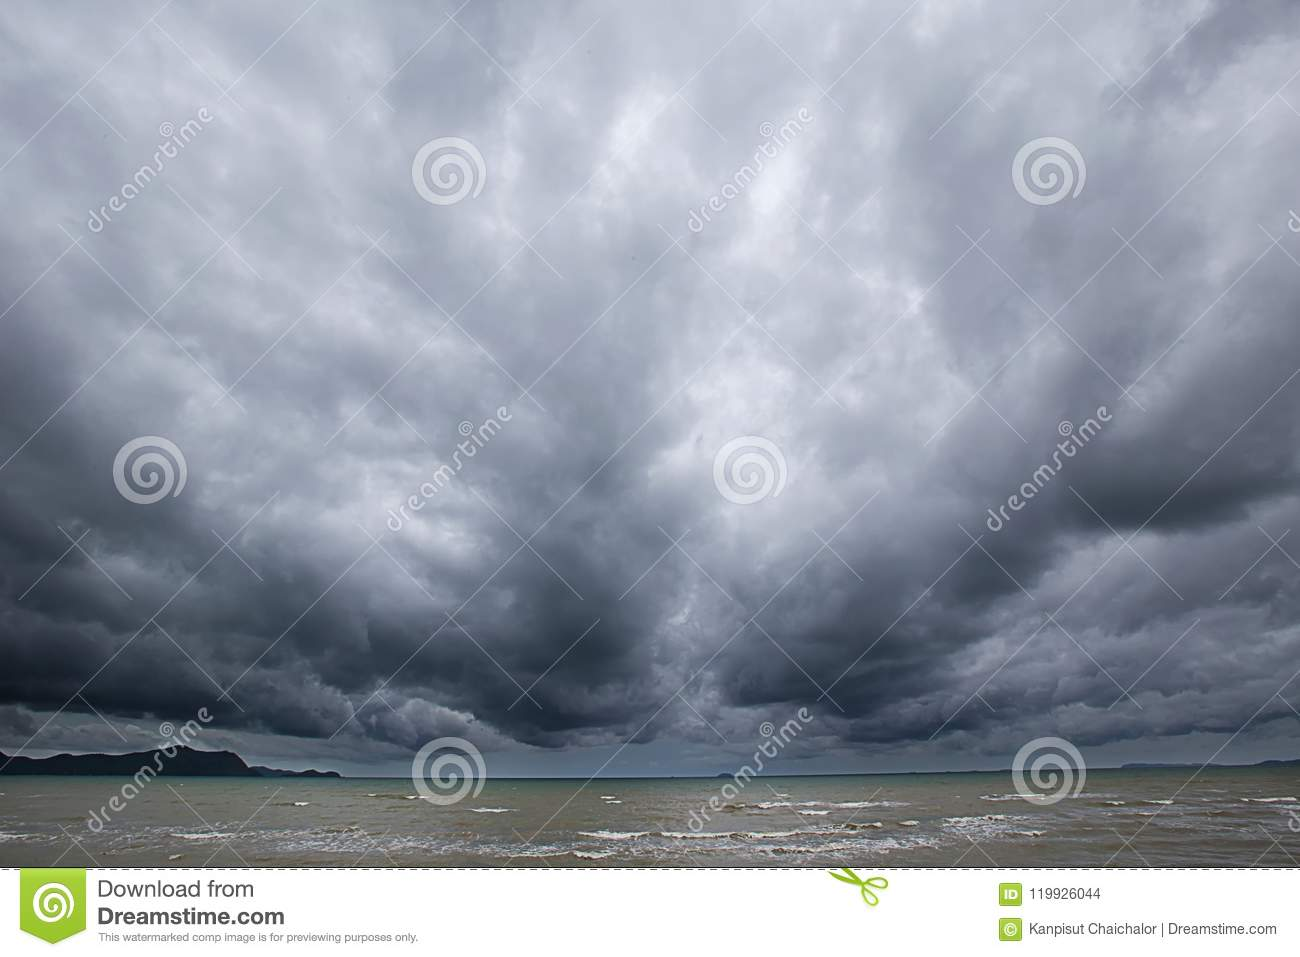 Cloudy storm in the sea before rainy.